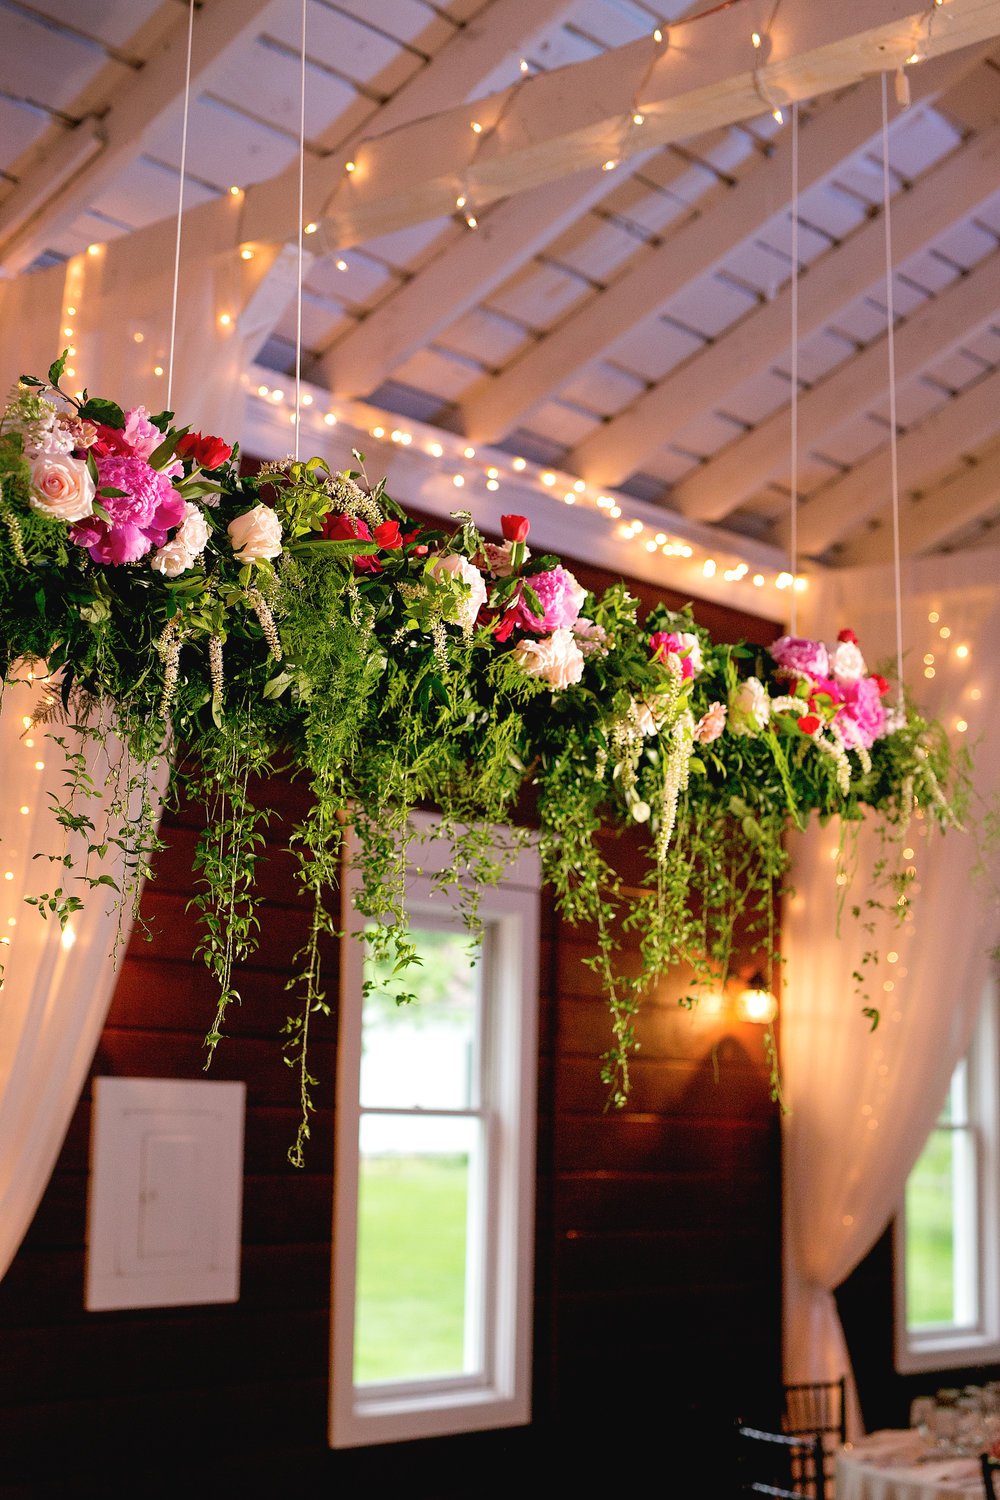 Circular or Linear Hanging Floral Chandeliers